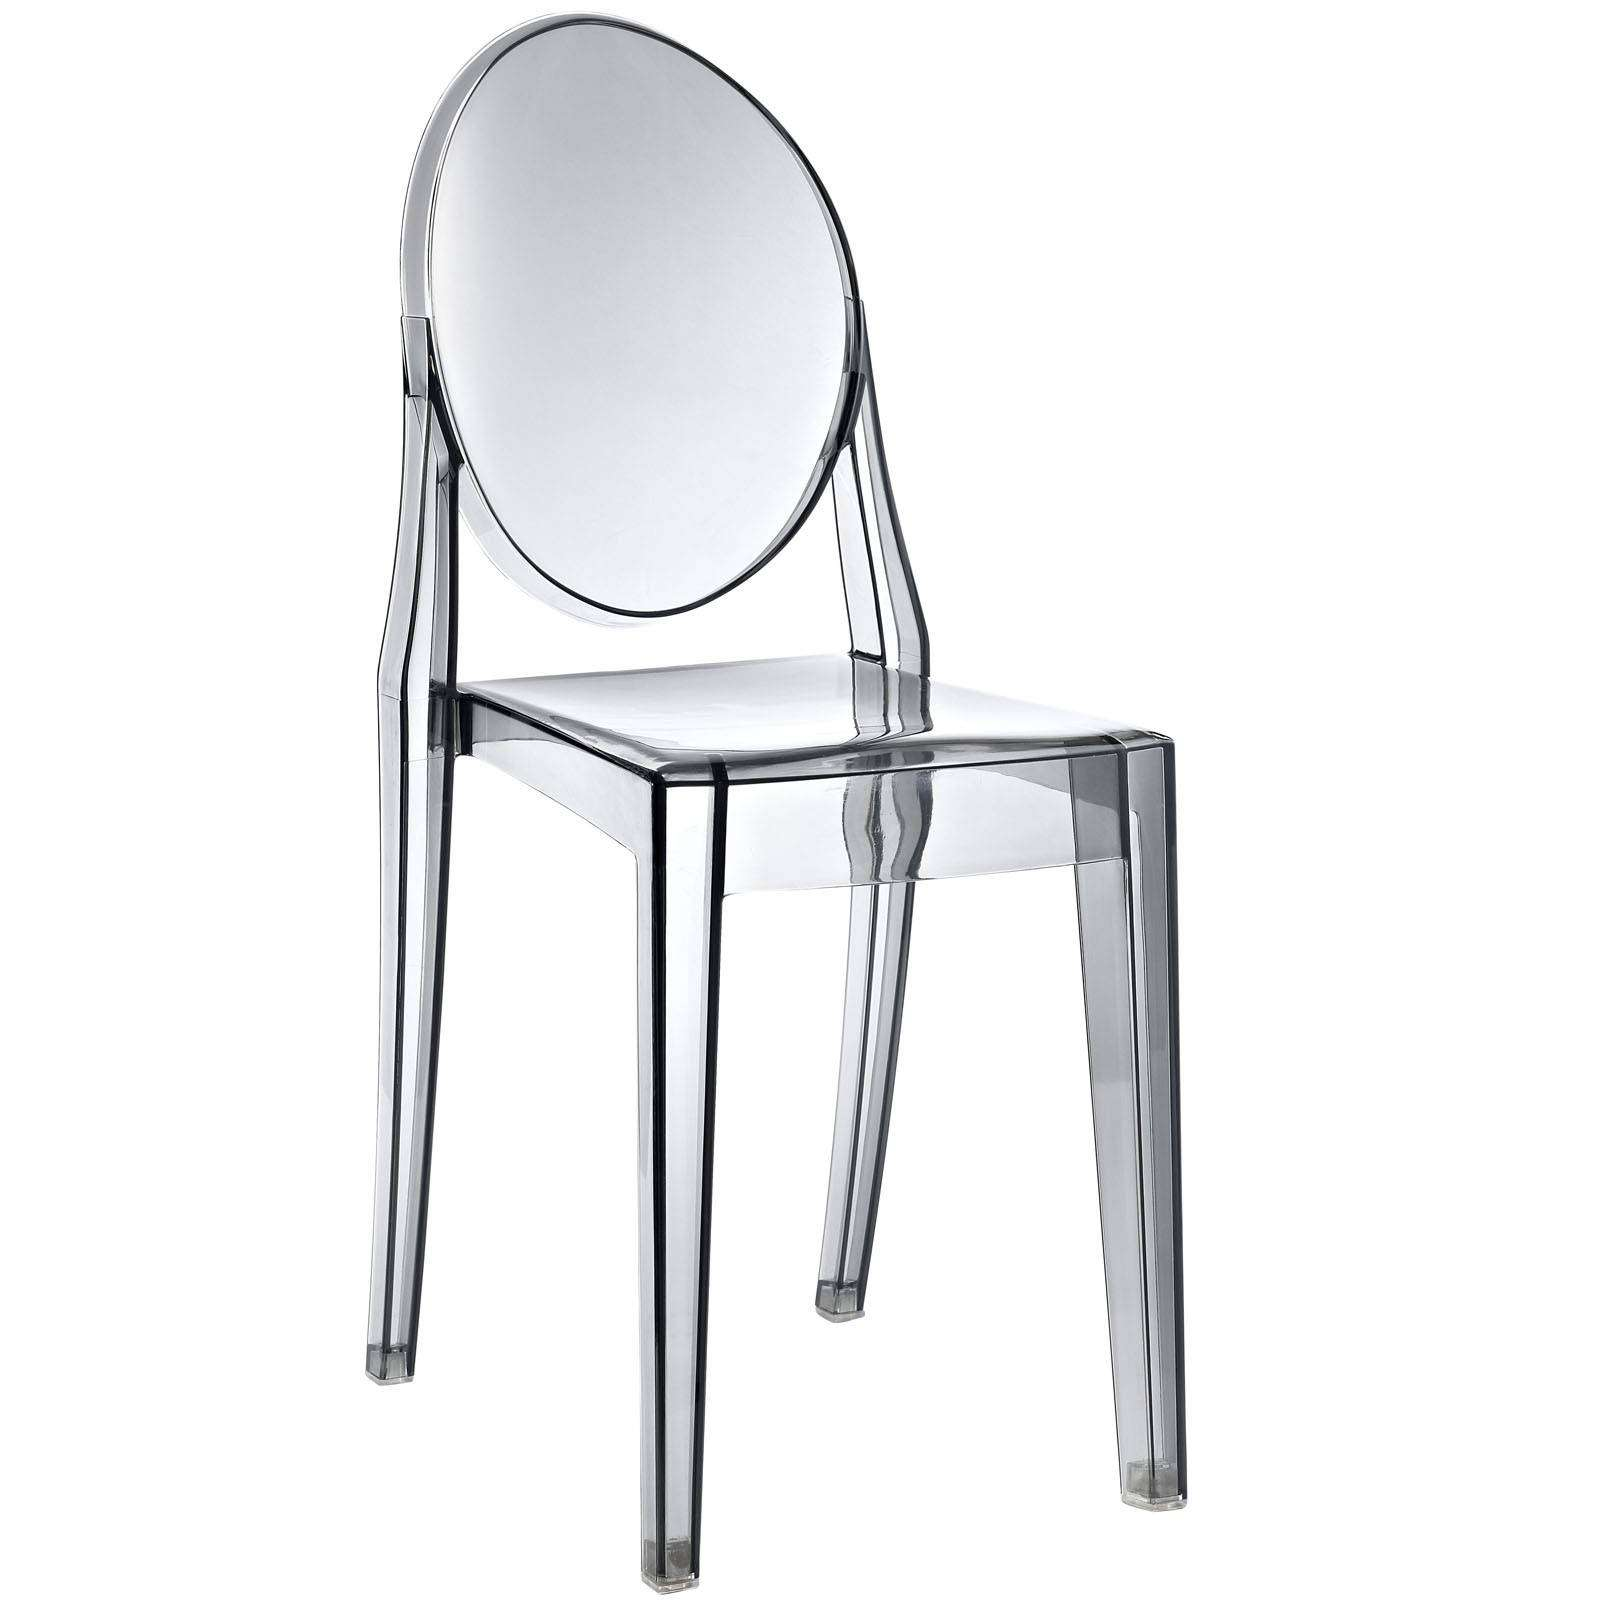 Philippe Starck Style Victoria Ghost Side Chair : EEI 122 SMK from www.modterior.com size 1600 x 1600 jpeg 161kB